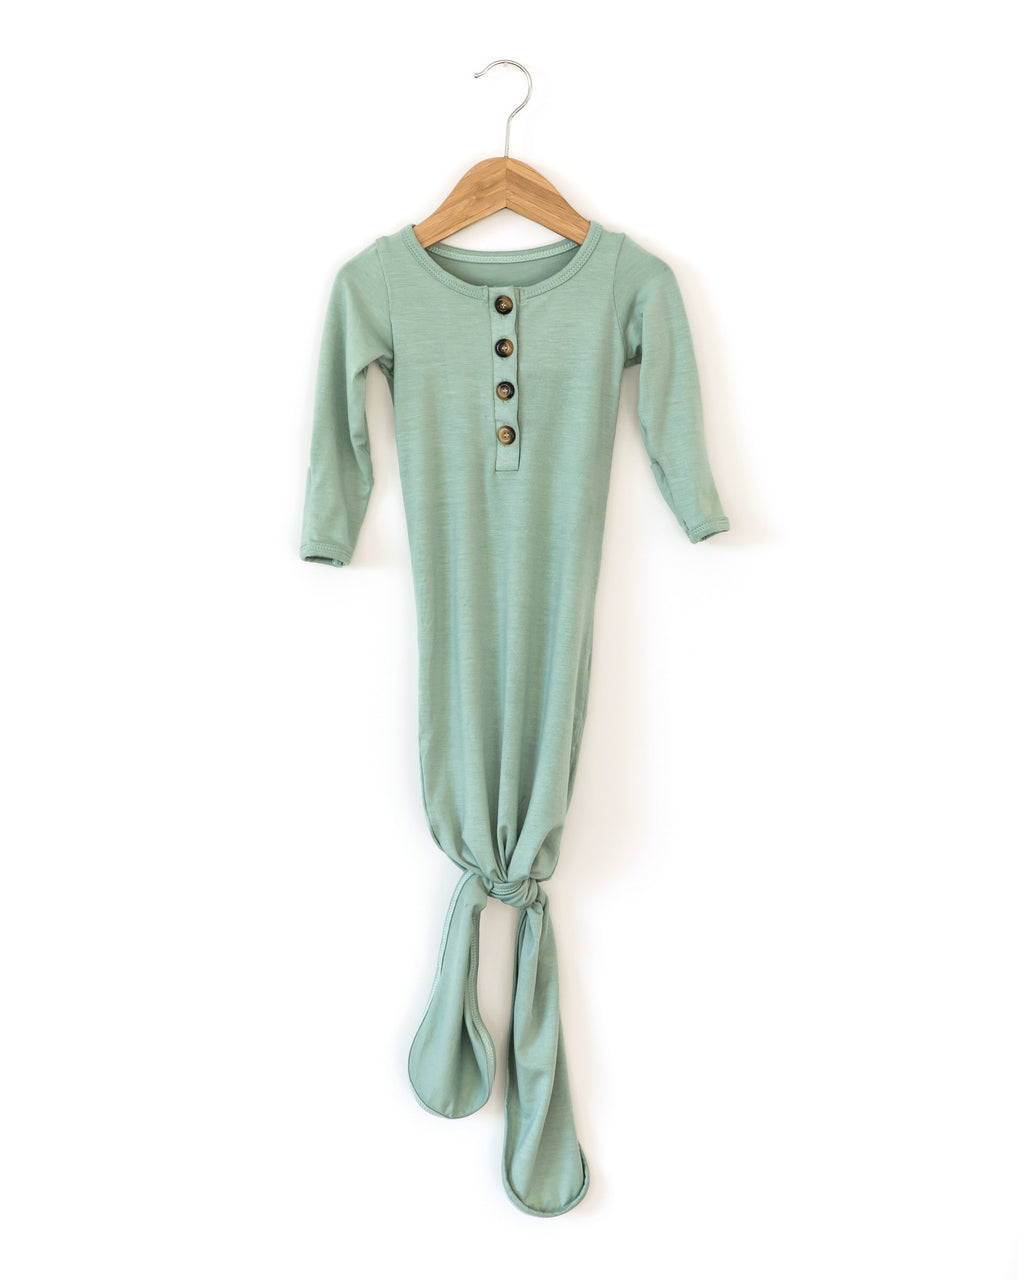 Buttery Soft Knotted Gown in Seafoam Green - Reverie Threads